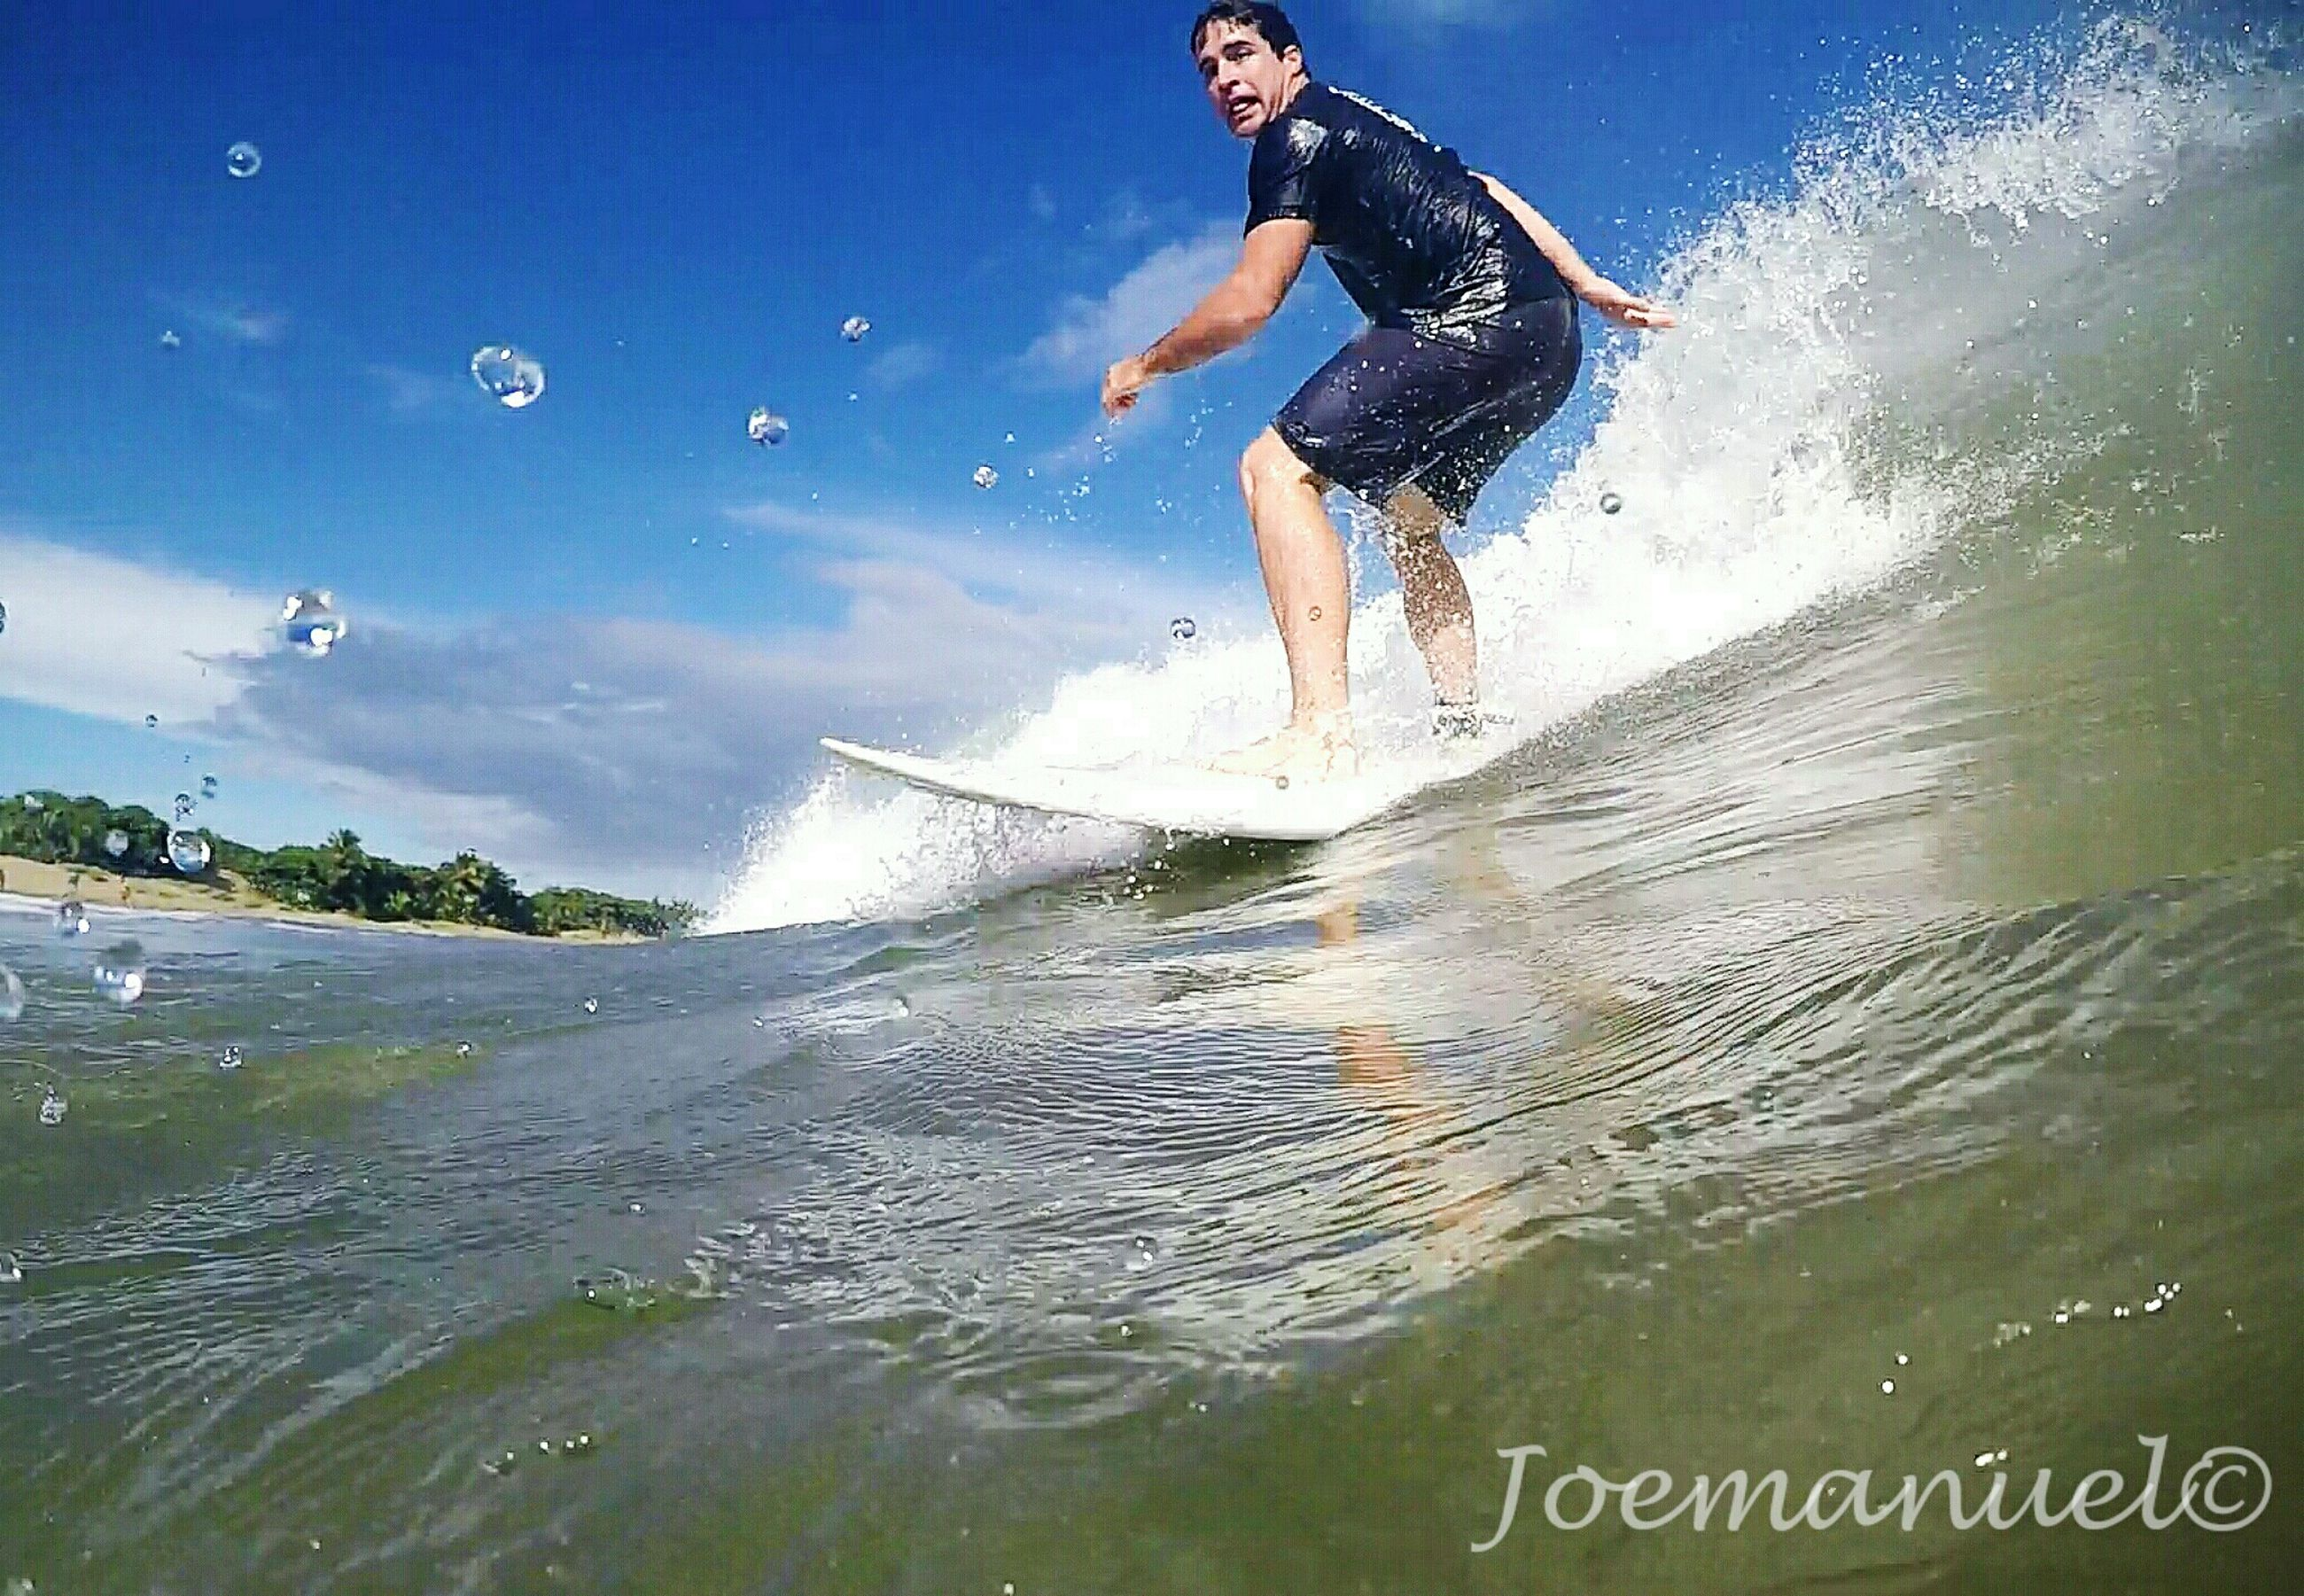 motion, vacations, splashing, leisure activity, lifestyles, surf, water, summer, sky, wave, enjoyment, blue, tranquility, weekend activities, spraying, nature, scenics, tourism, tranquil scene, adventure, sea, shore, outdoors, non-urban scene